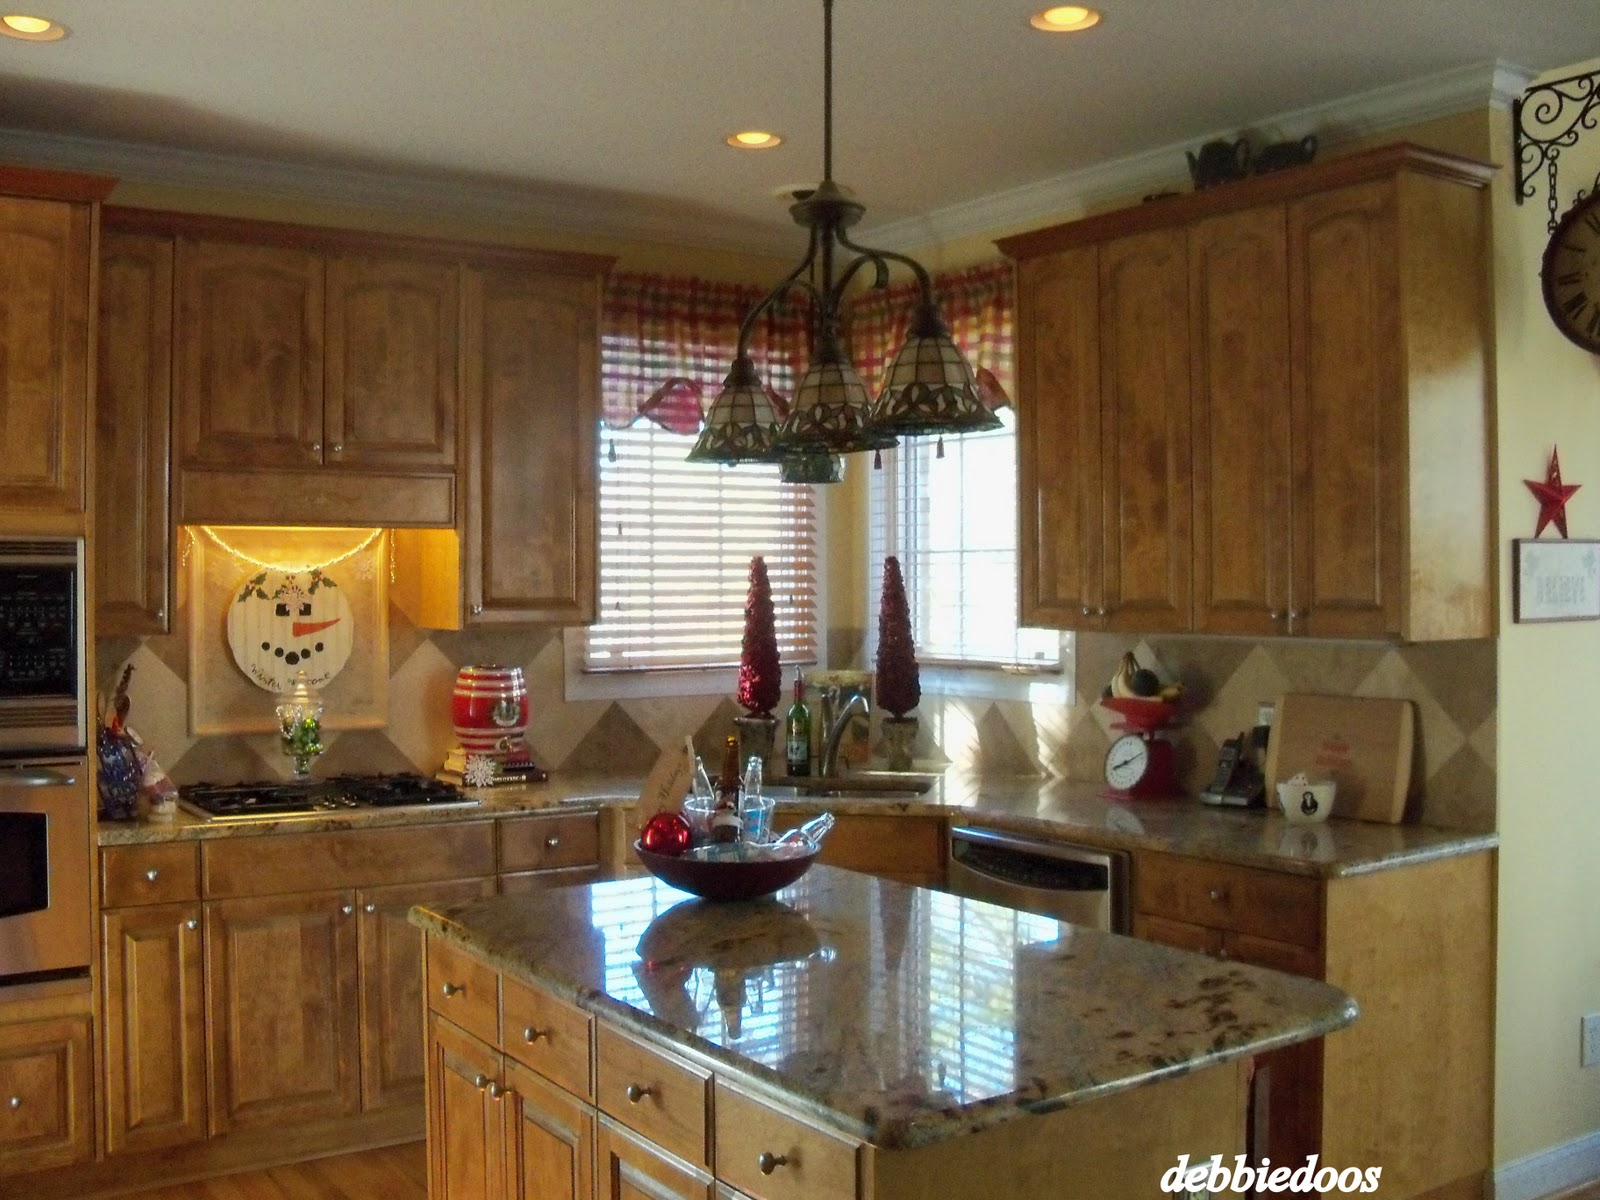 How To Decorate Kitchen Cabinets For Christmad